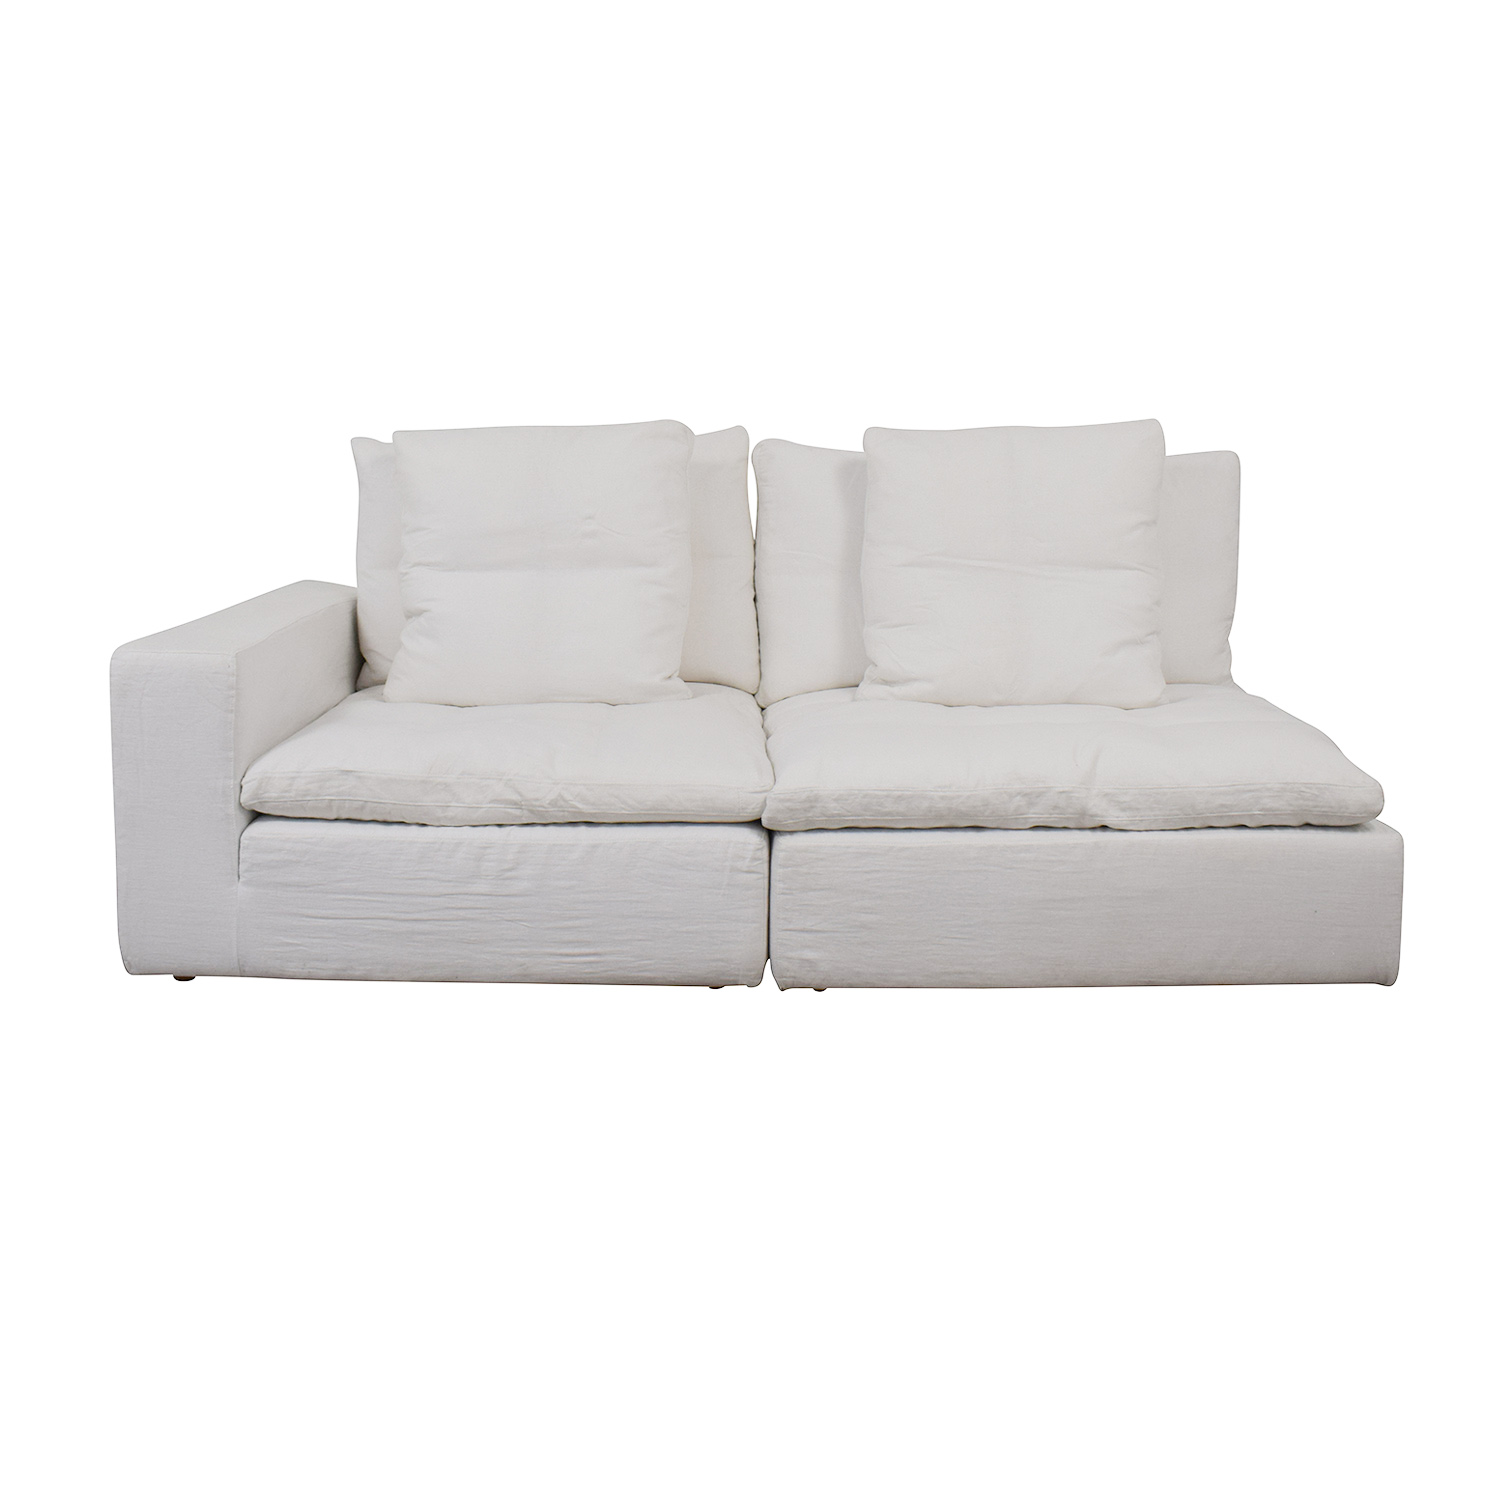 Restoration Hardware Cloud Modular Corner Chair and Armless Chair / Sofas